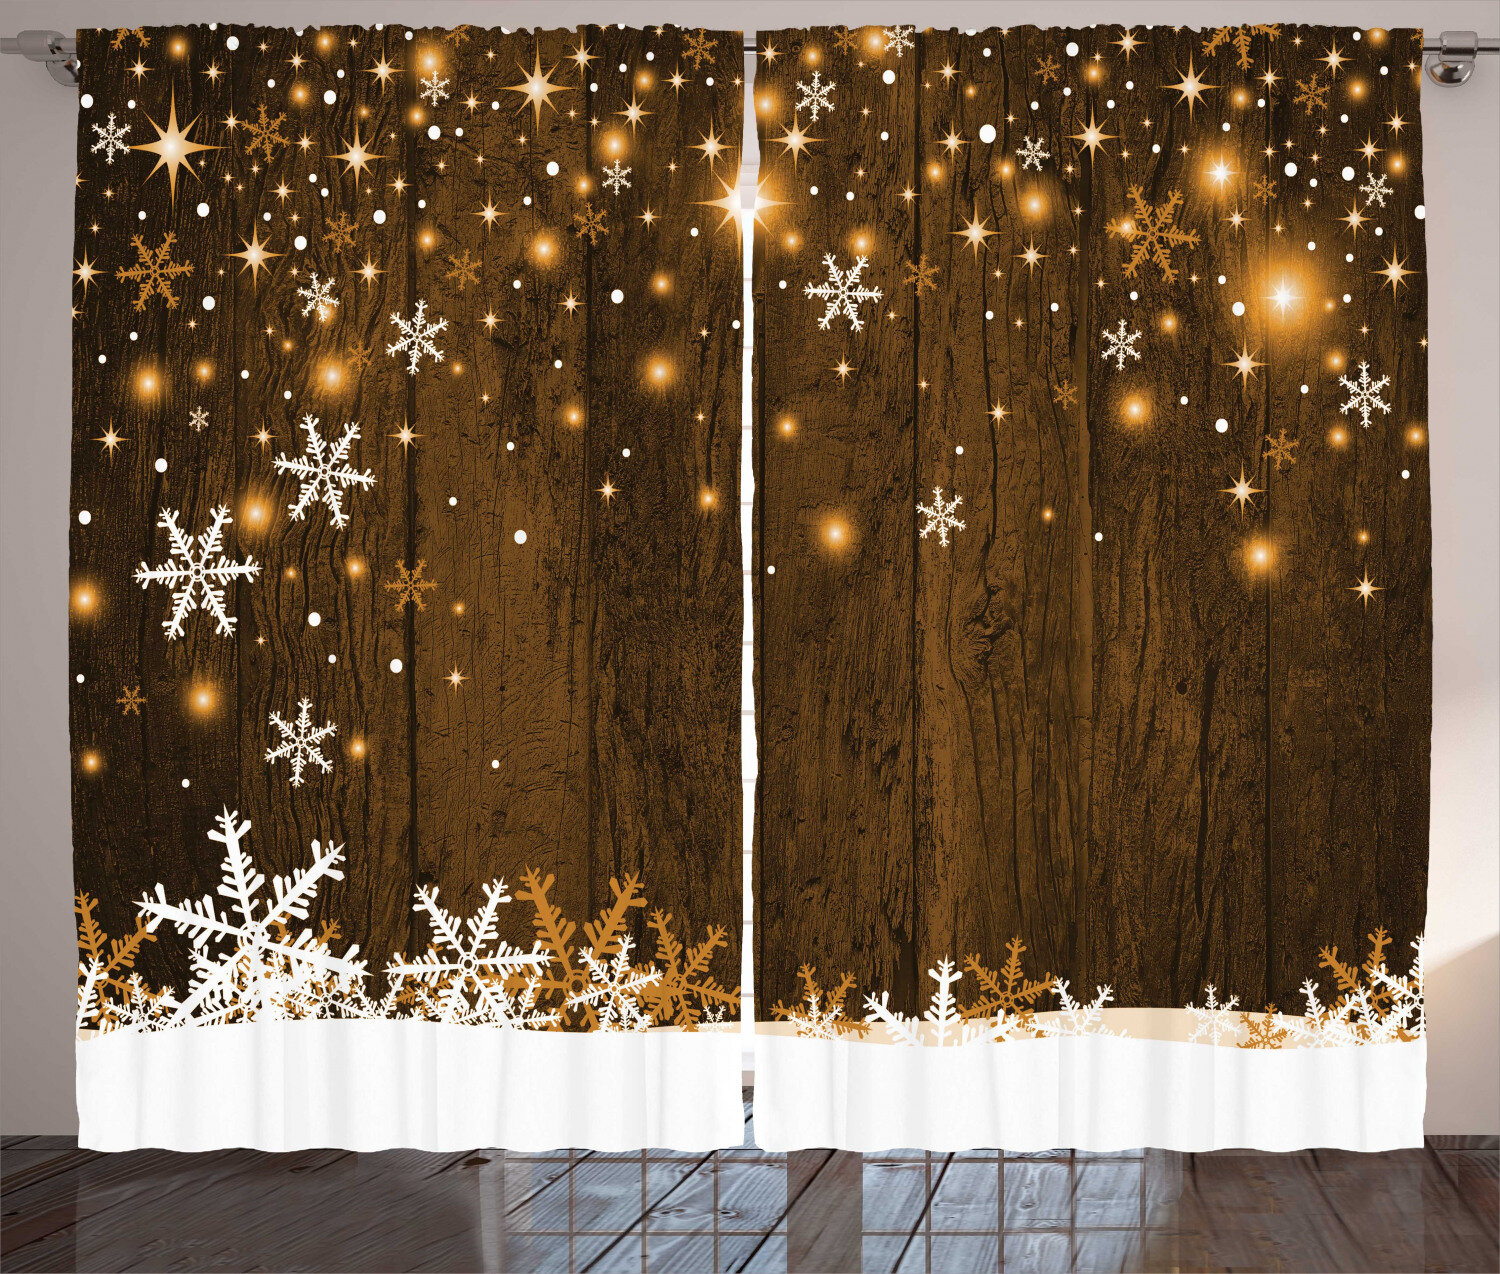 The Holiday Aisle Christmas Decorations Rustic Wooden Backdrop With Snowflakes And Lights Warm Celebration Graphic Print Text Semi Sheer Rod Pocket Curtain Panels Reviews Wayfair